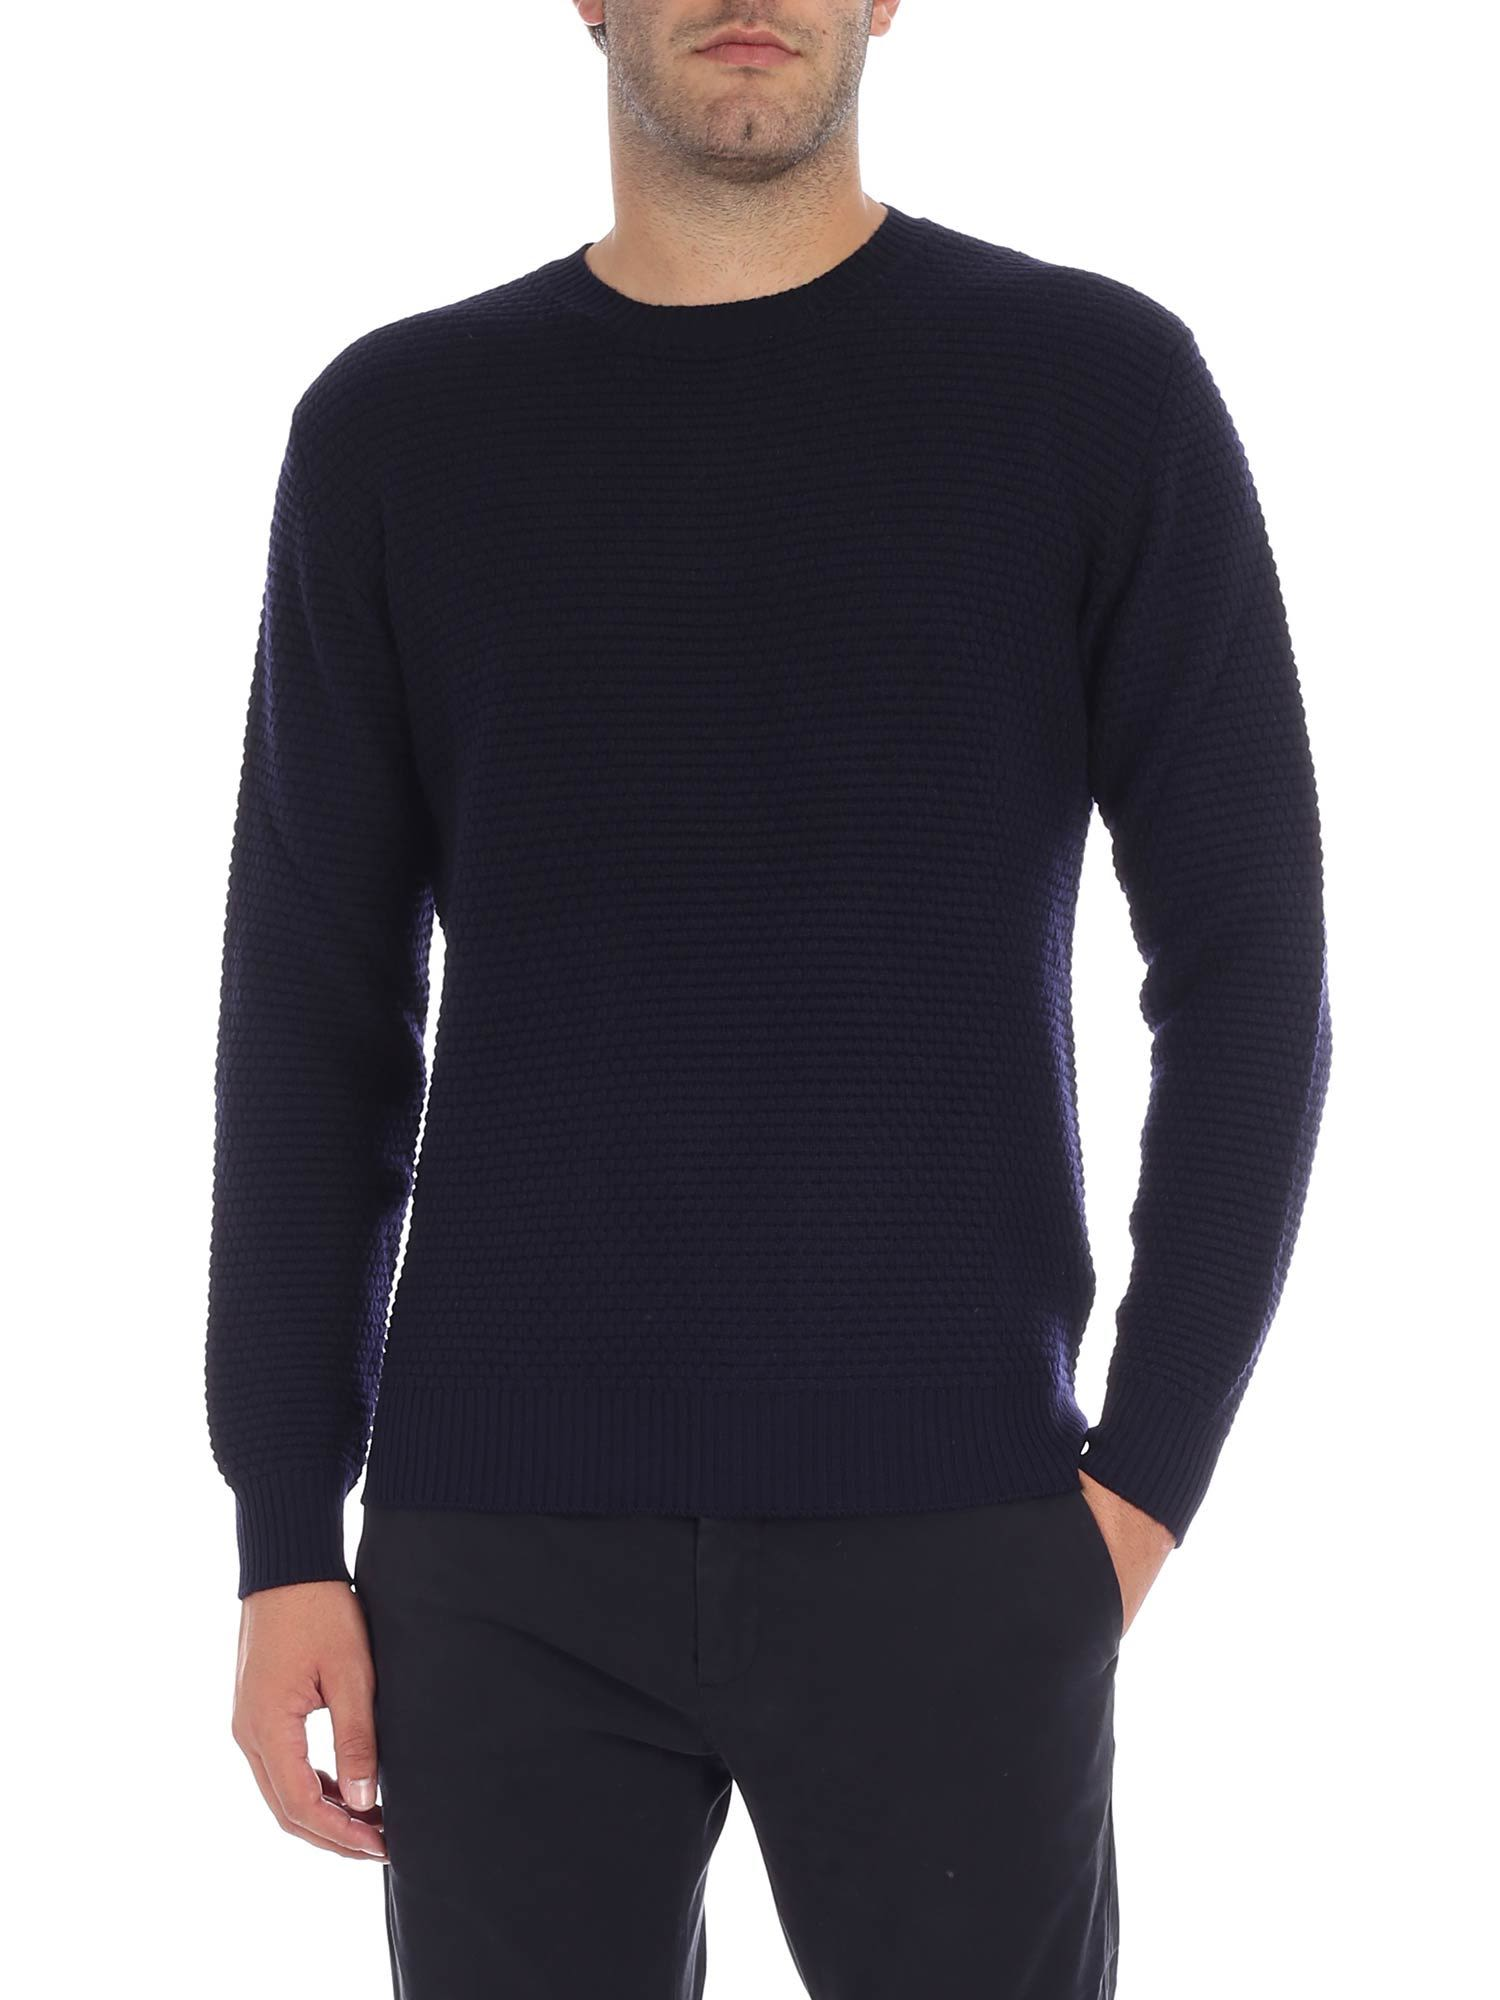 LUIGI BORRELLI Knitted Detail Jumper in Blue